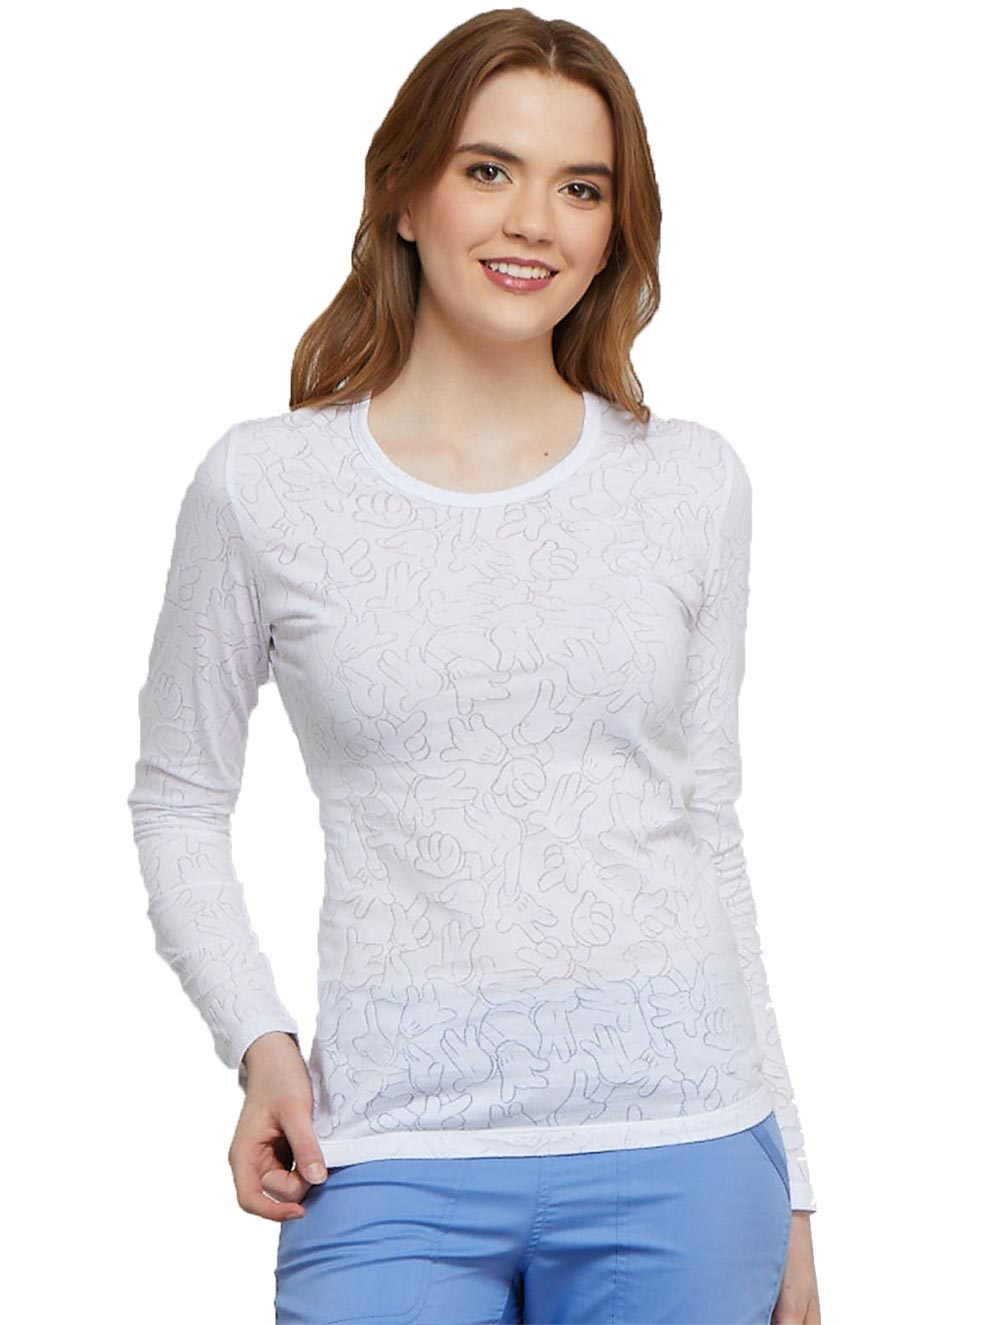 Long Sleeve Underscrub Knit Tee